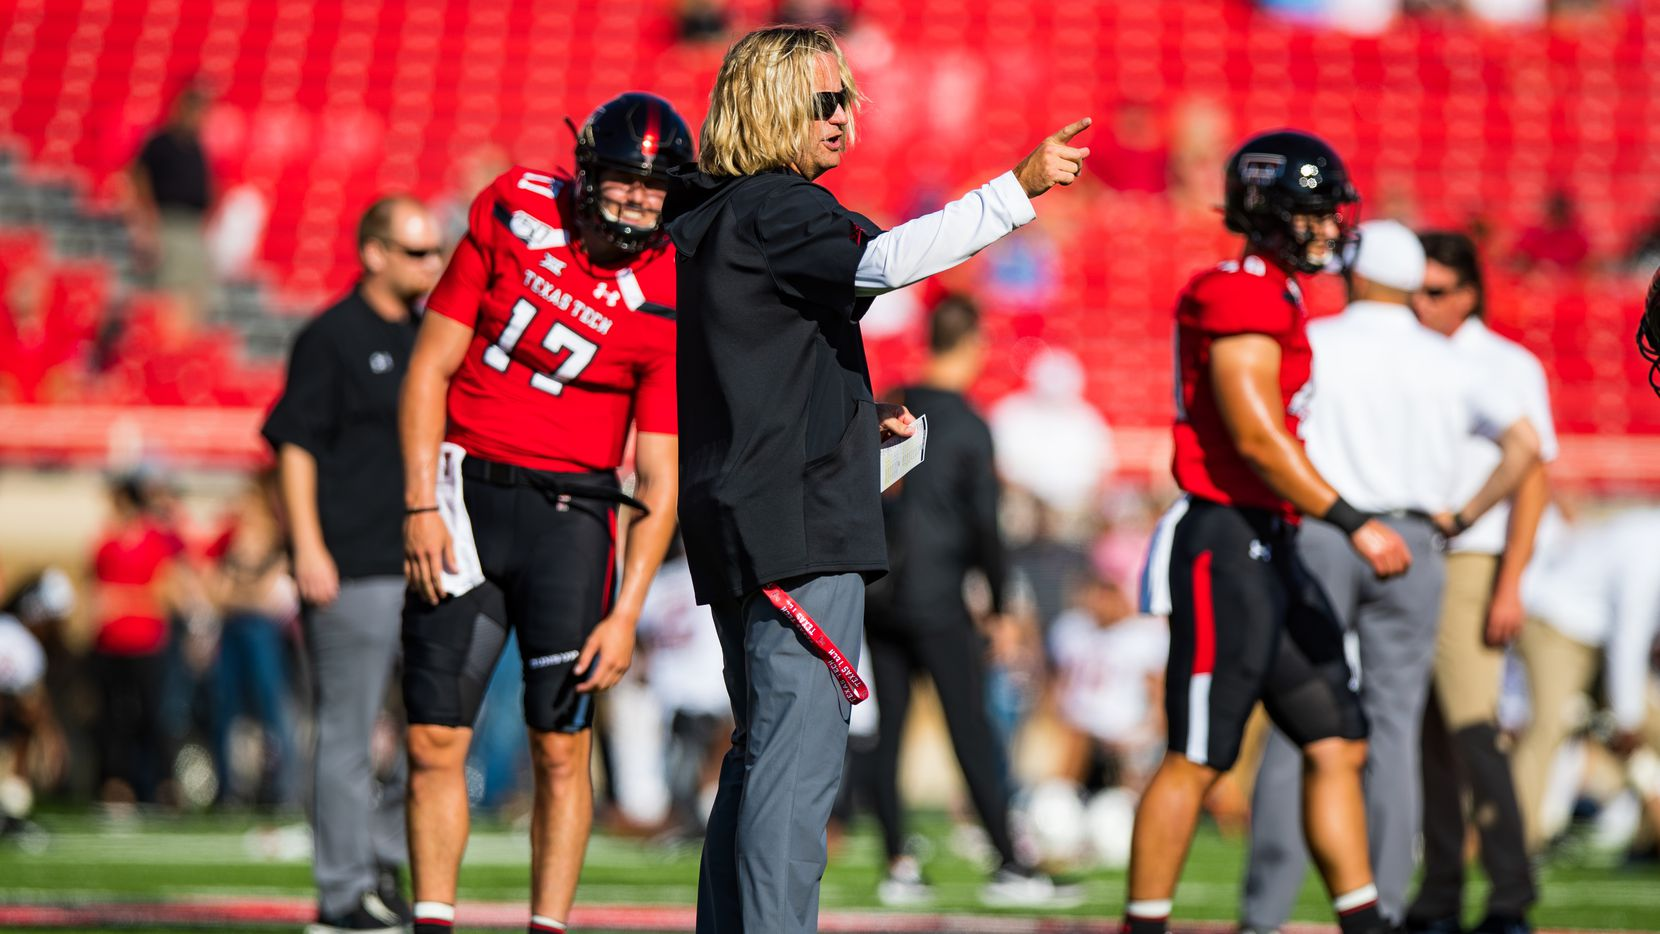 LUBBOCK, TEXAS - OCTOBER 05: Offensive coordinator David Yost of the Texas Tech Red Raiders oversees pregame warmups before the college football game against the Oklahoma State Cowboys on October 05, 2019 at Jones AT&T Stadium in Lubbock, Texas.